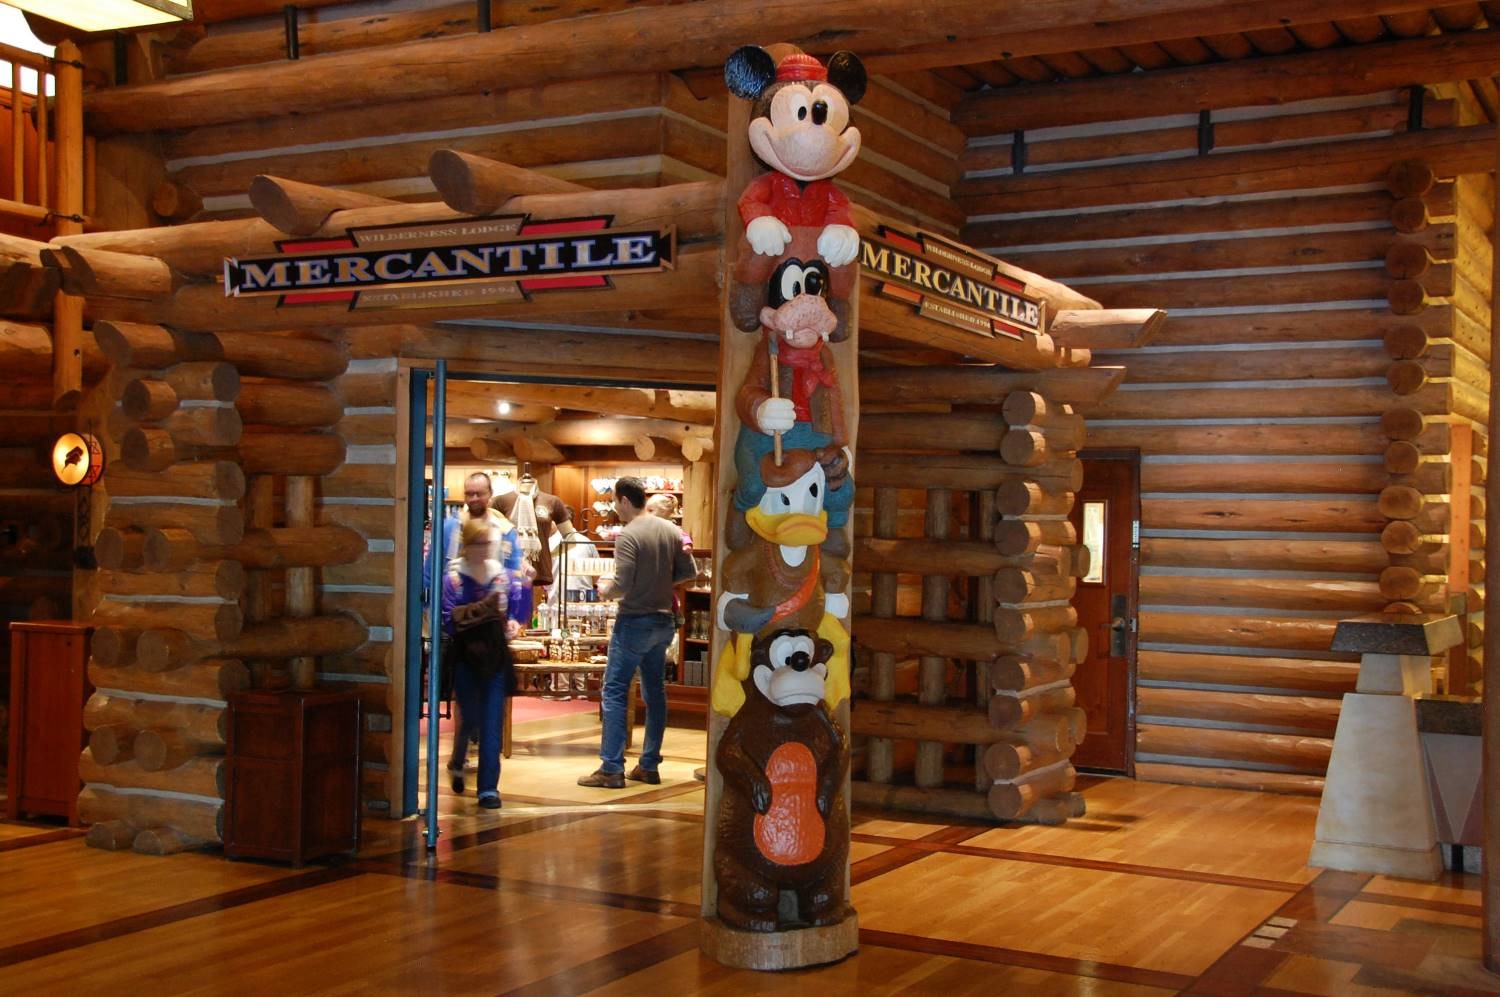 The Mercantile in the lobby of Disney's Wilderness Lodge features a Disney character totem pole.